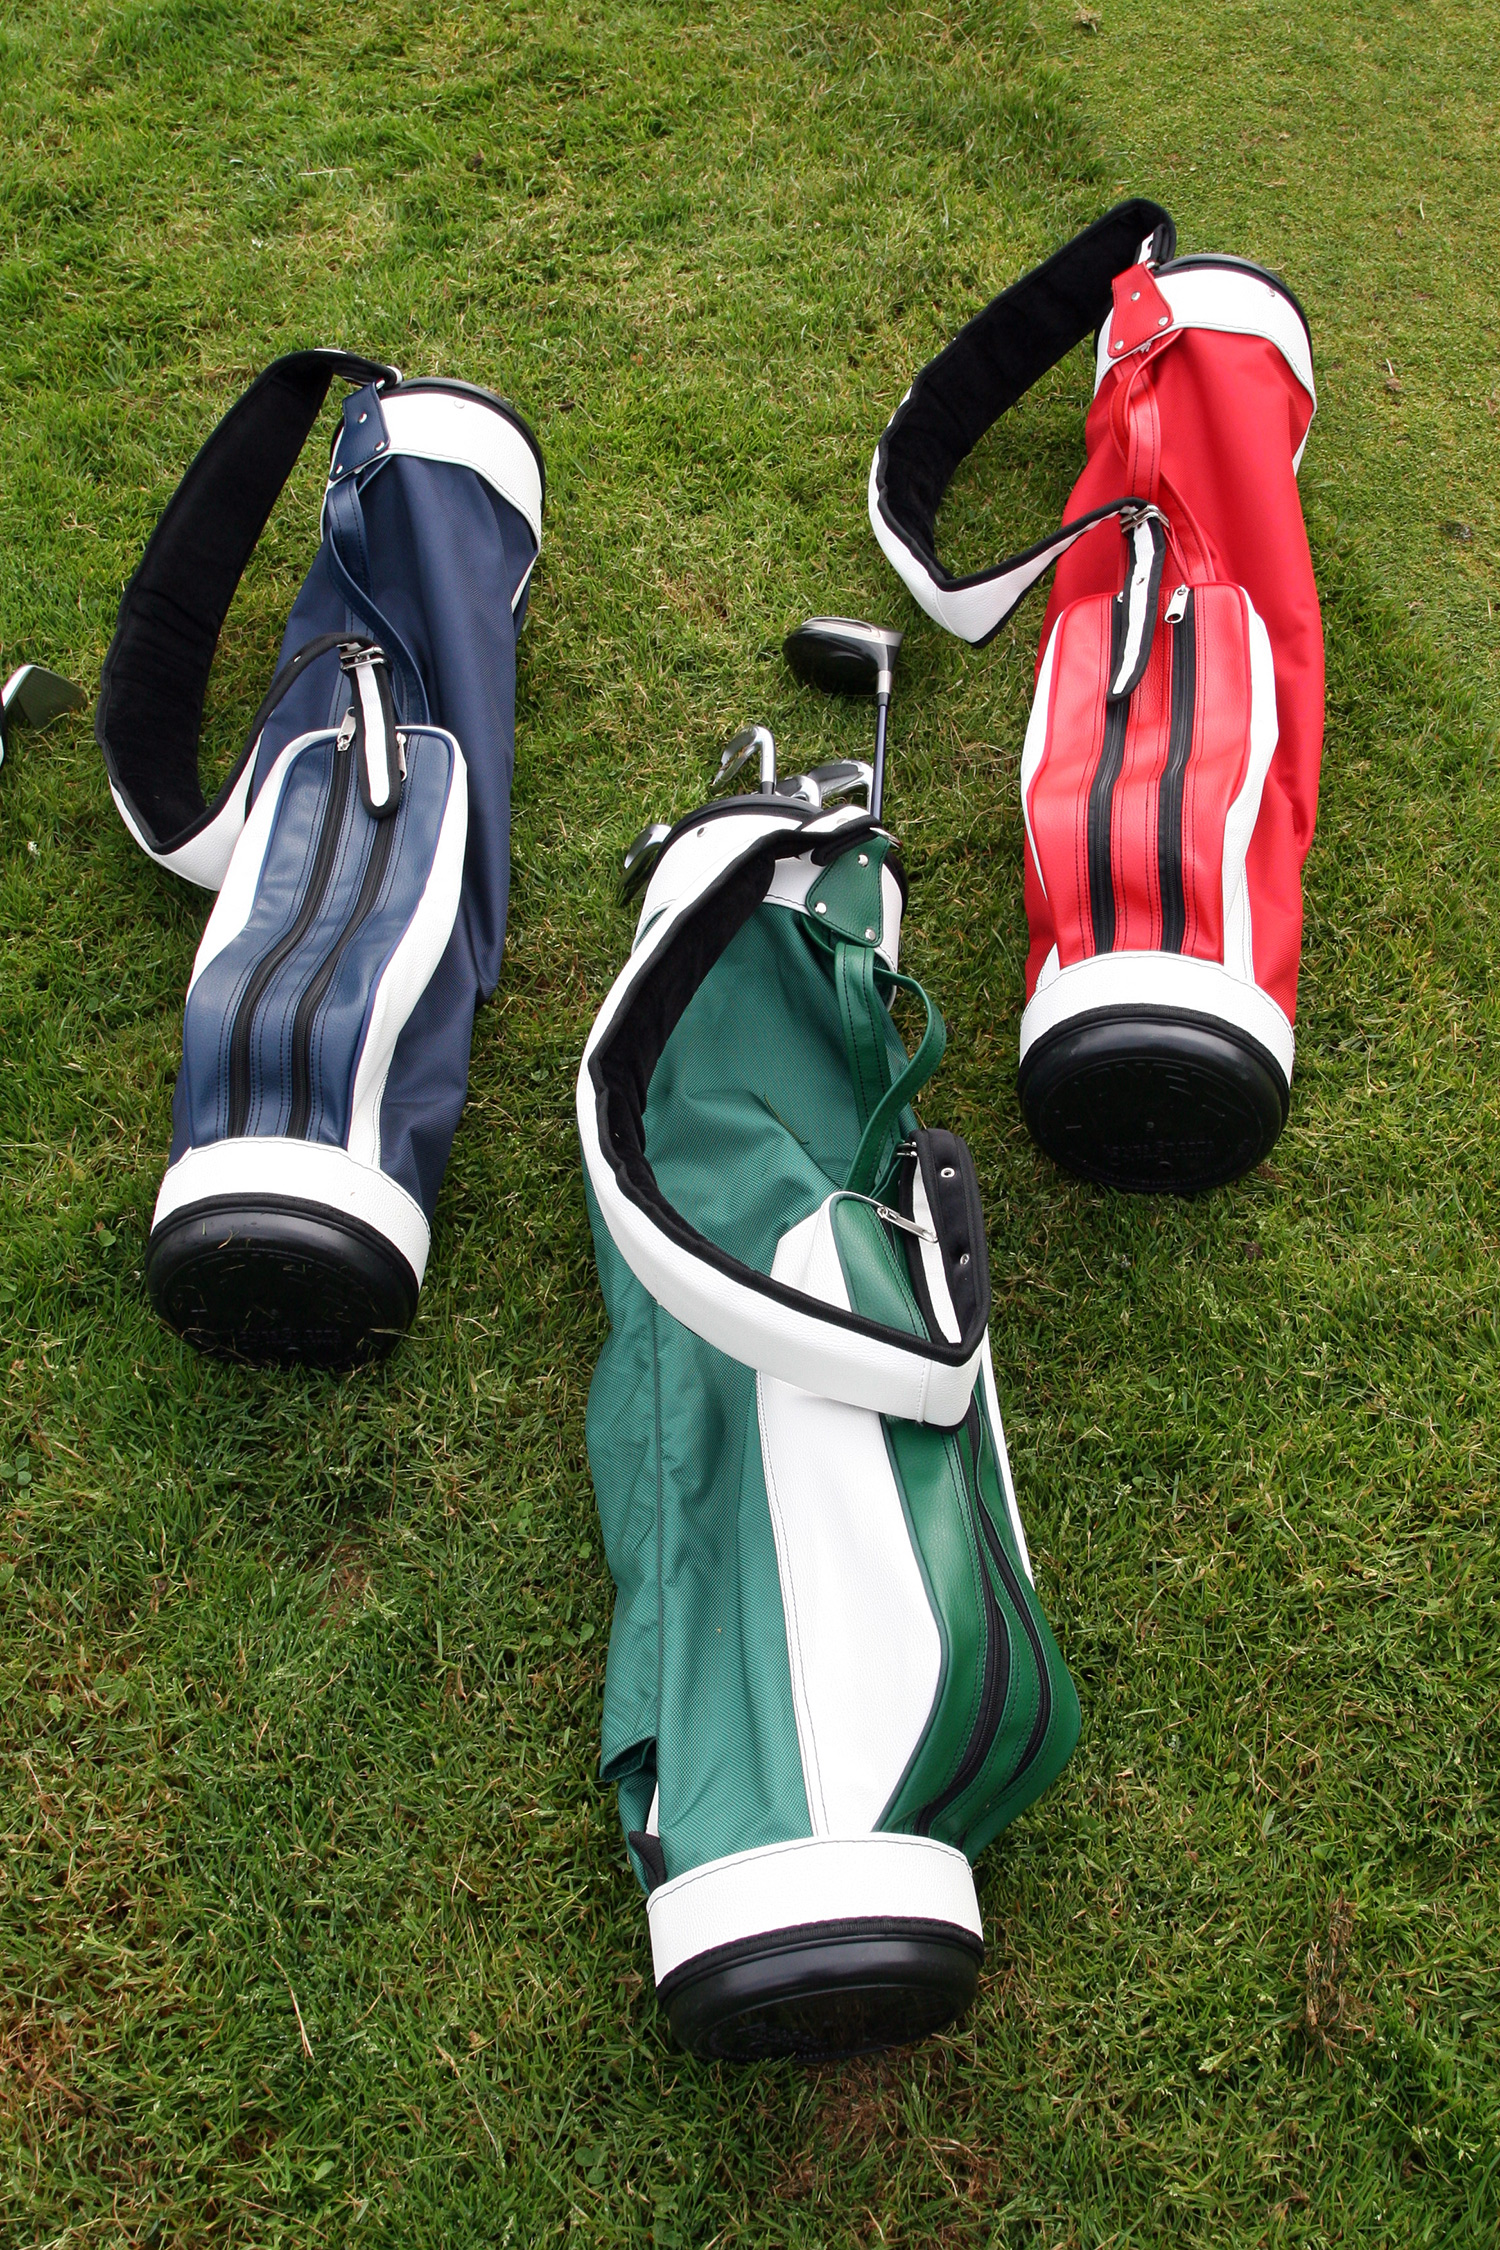 Announces Launch Of Their New Website And The Return Original Jones Golf Bag